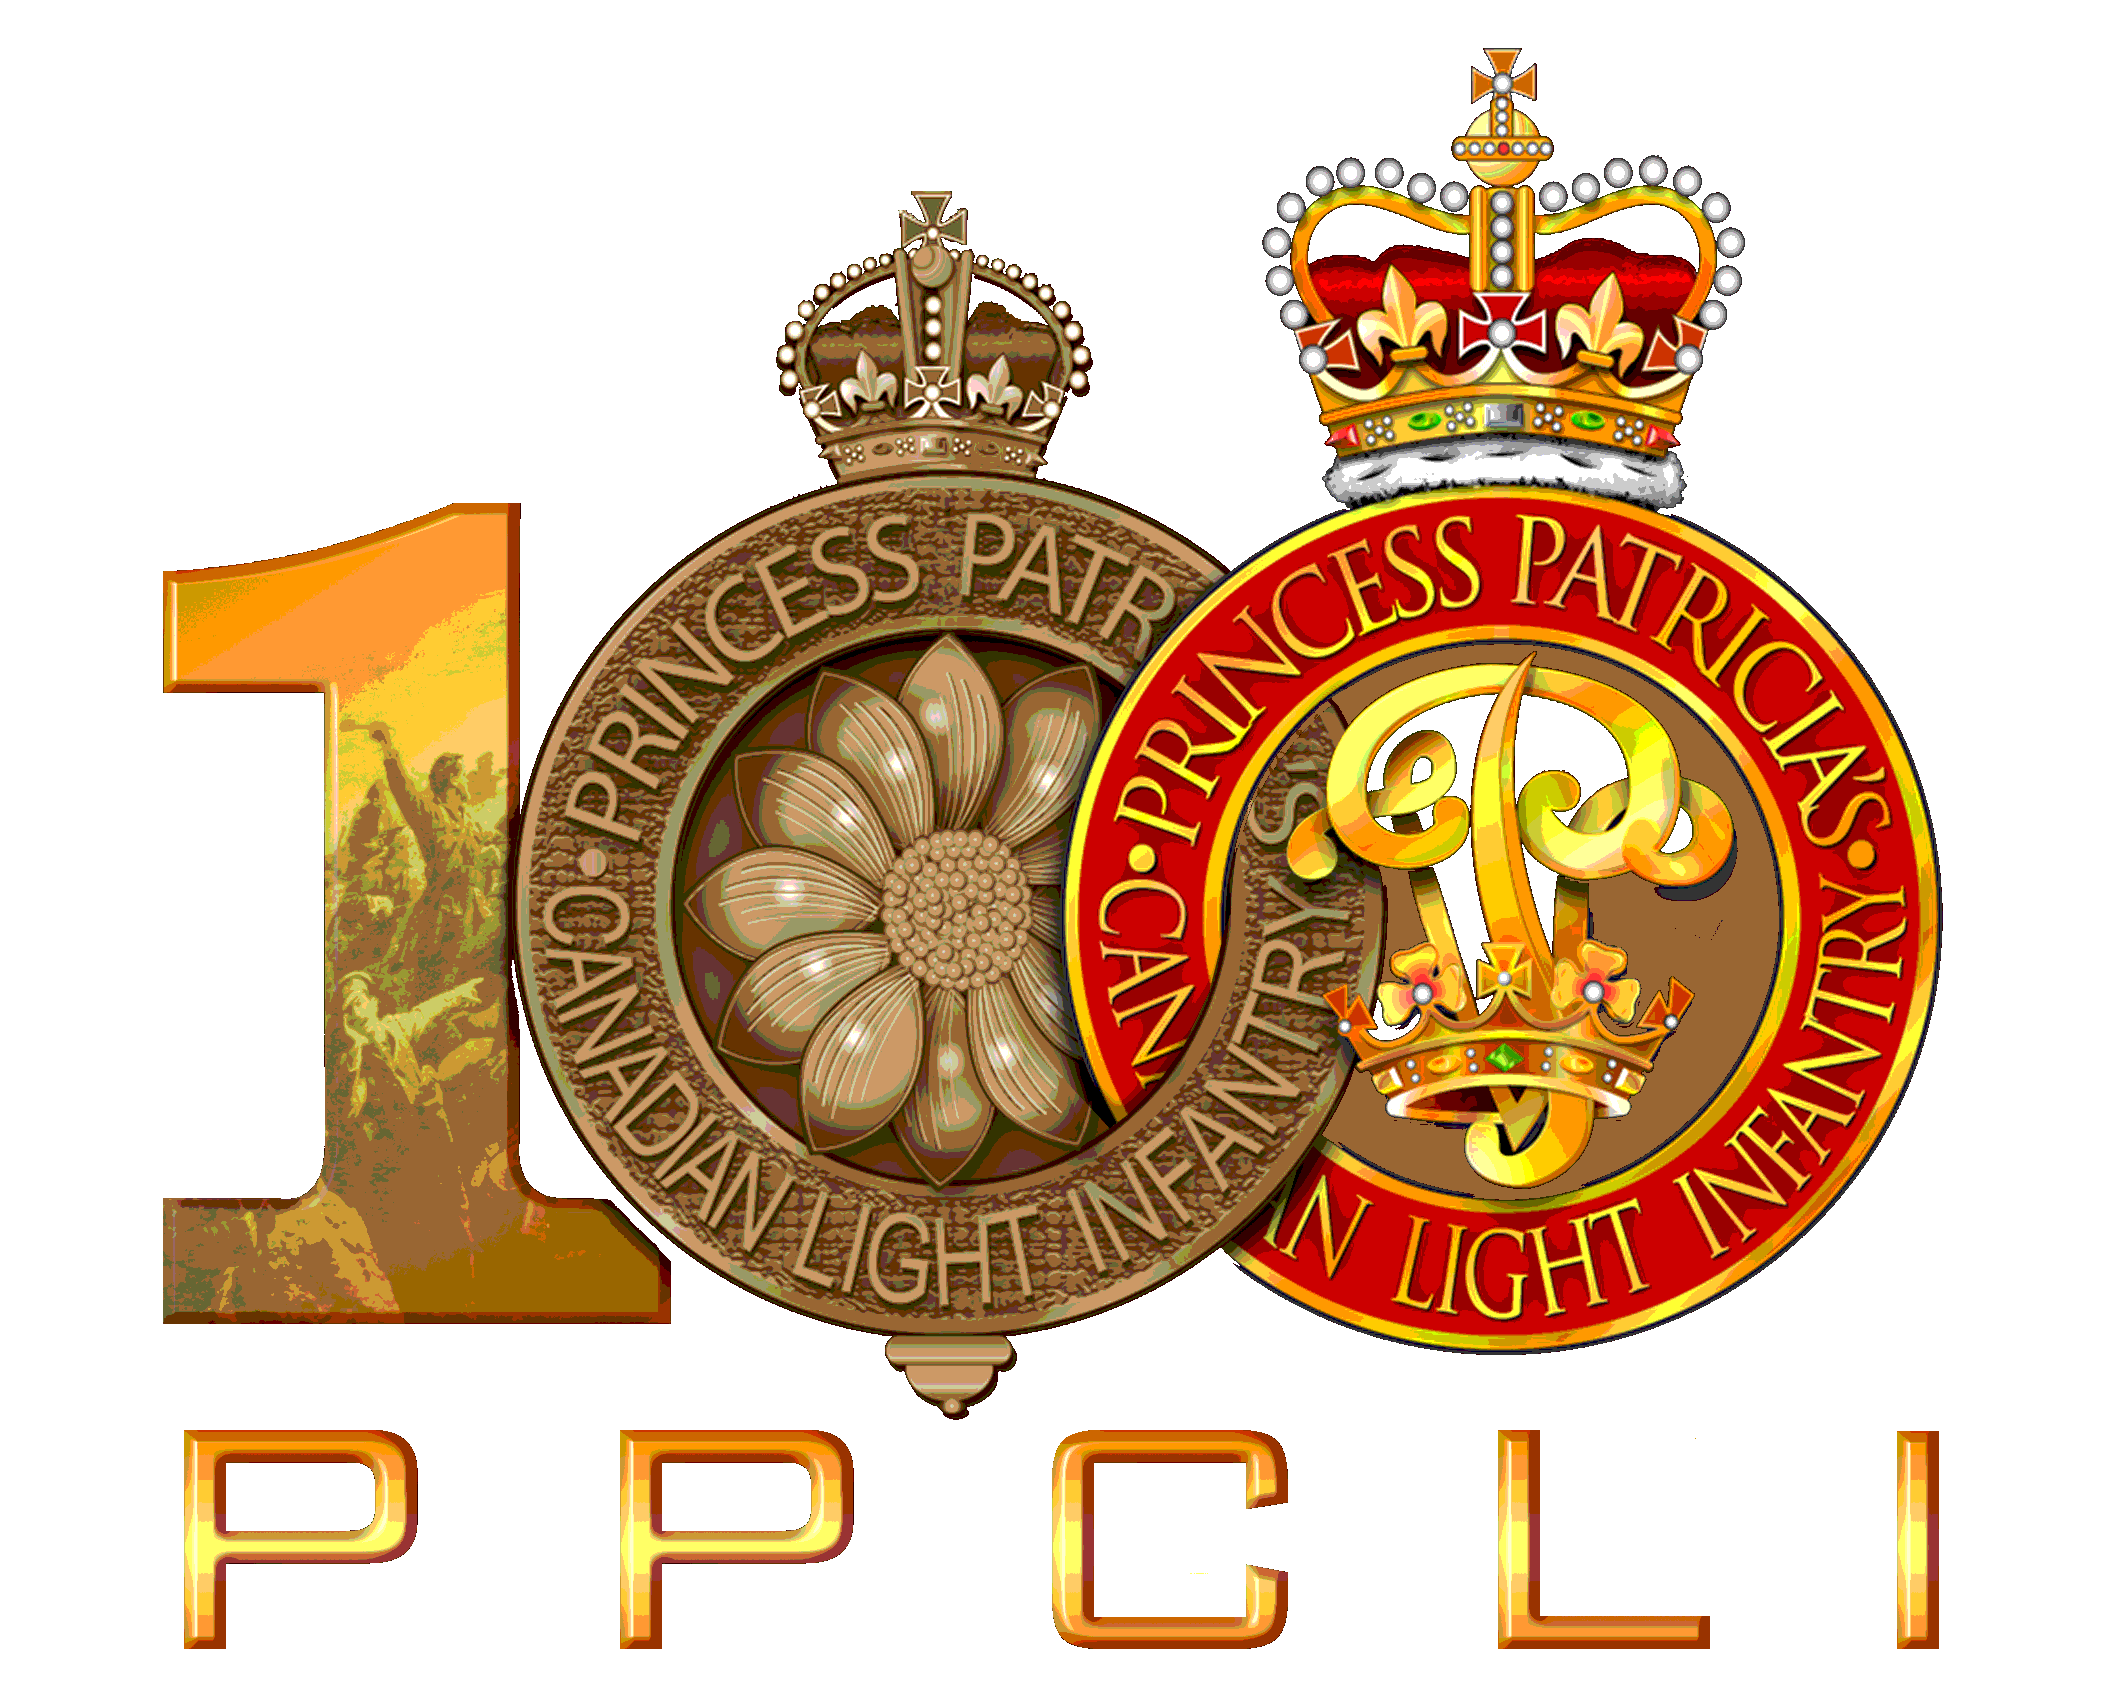 2013-08-06-ppcli100th_transparent2.png